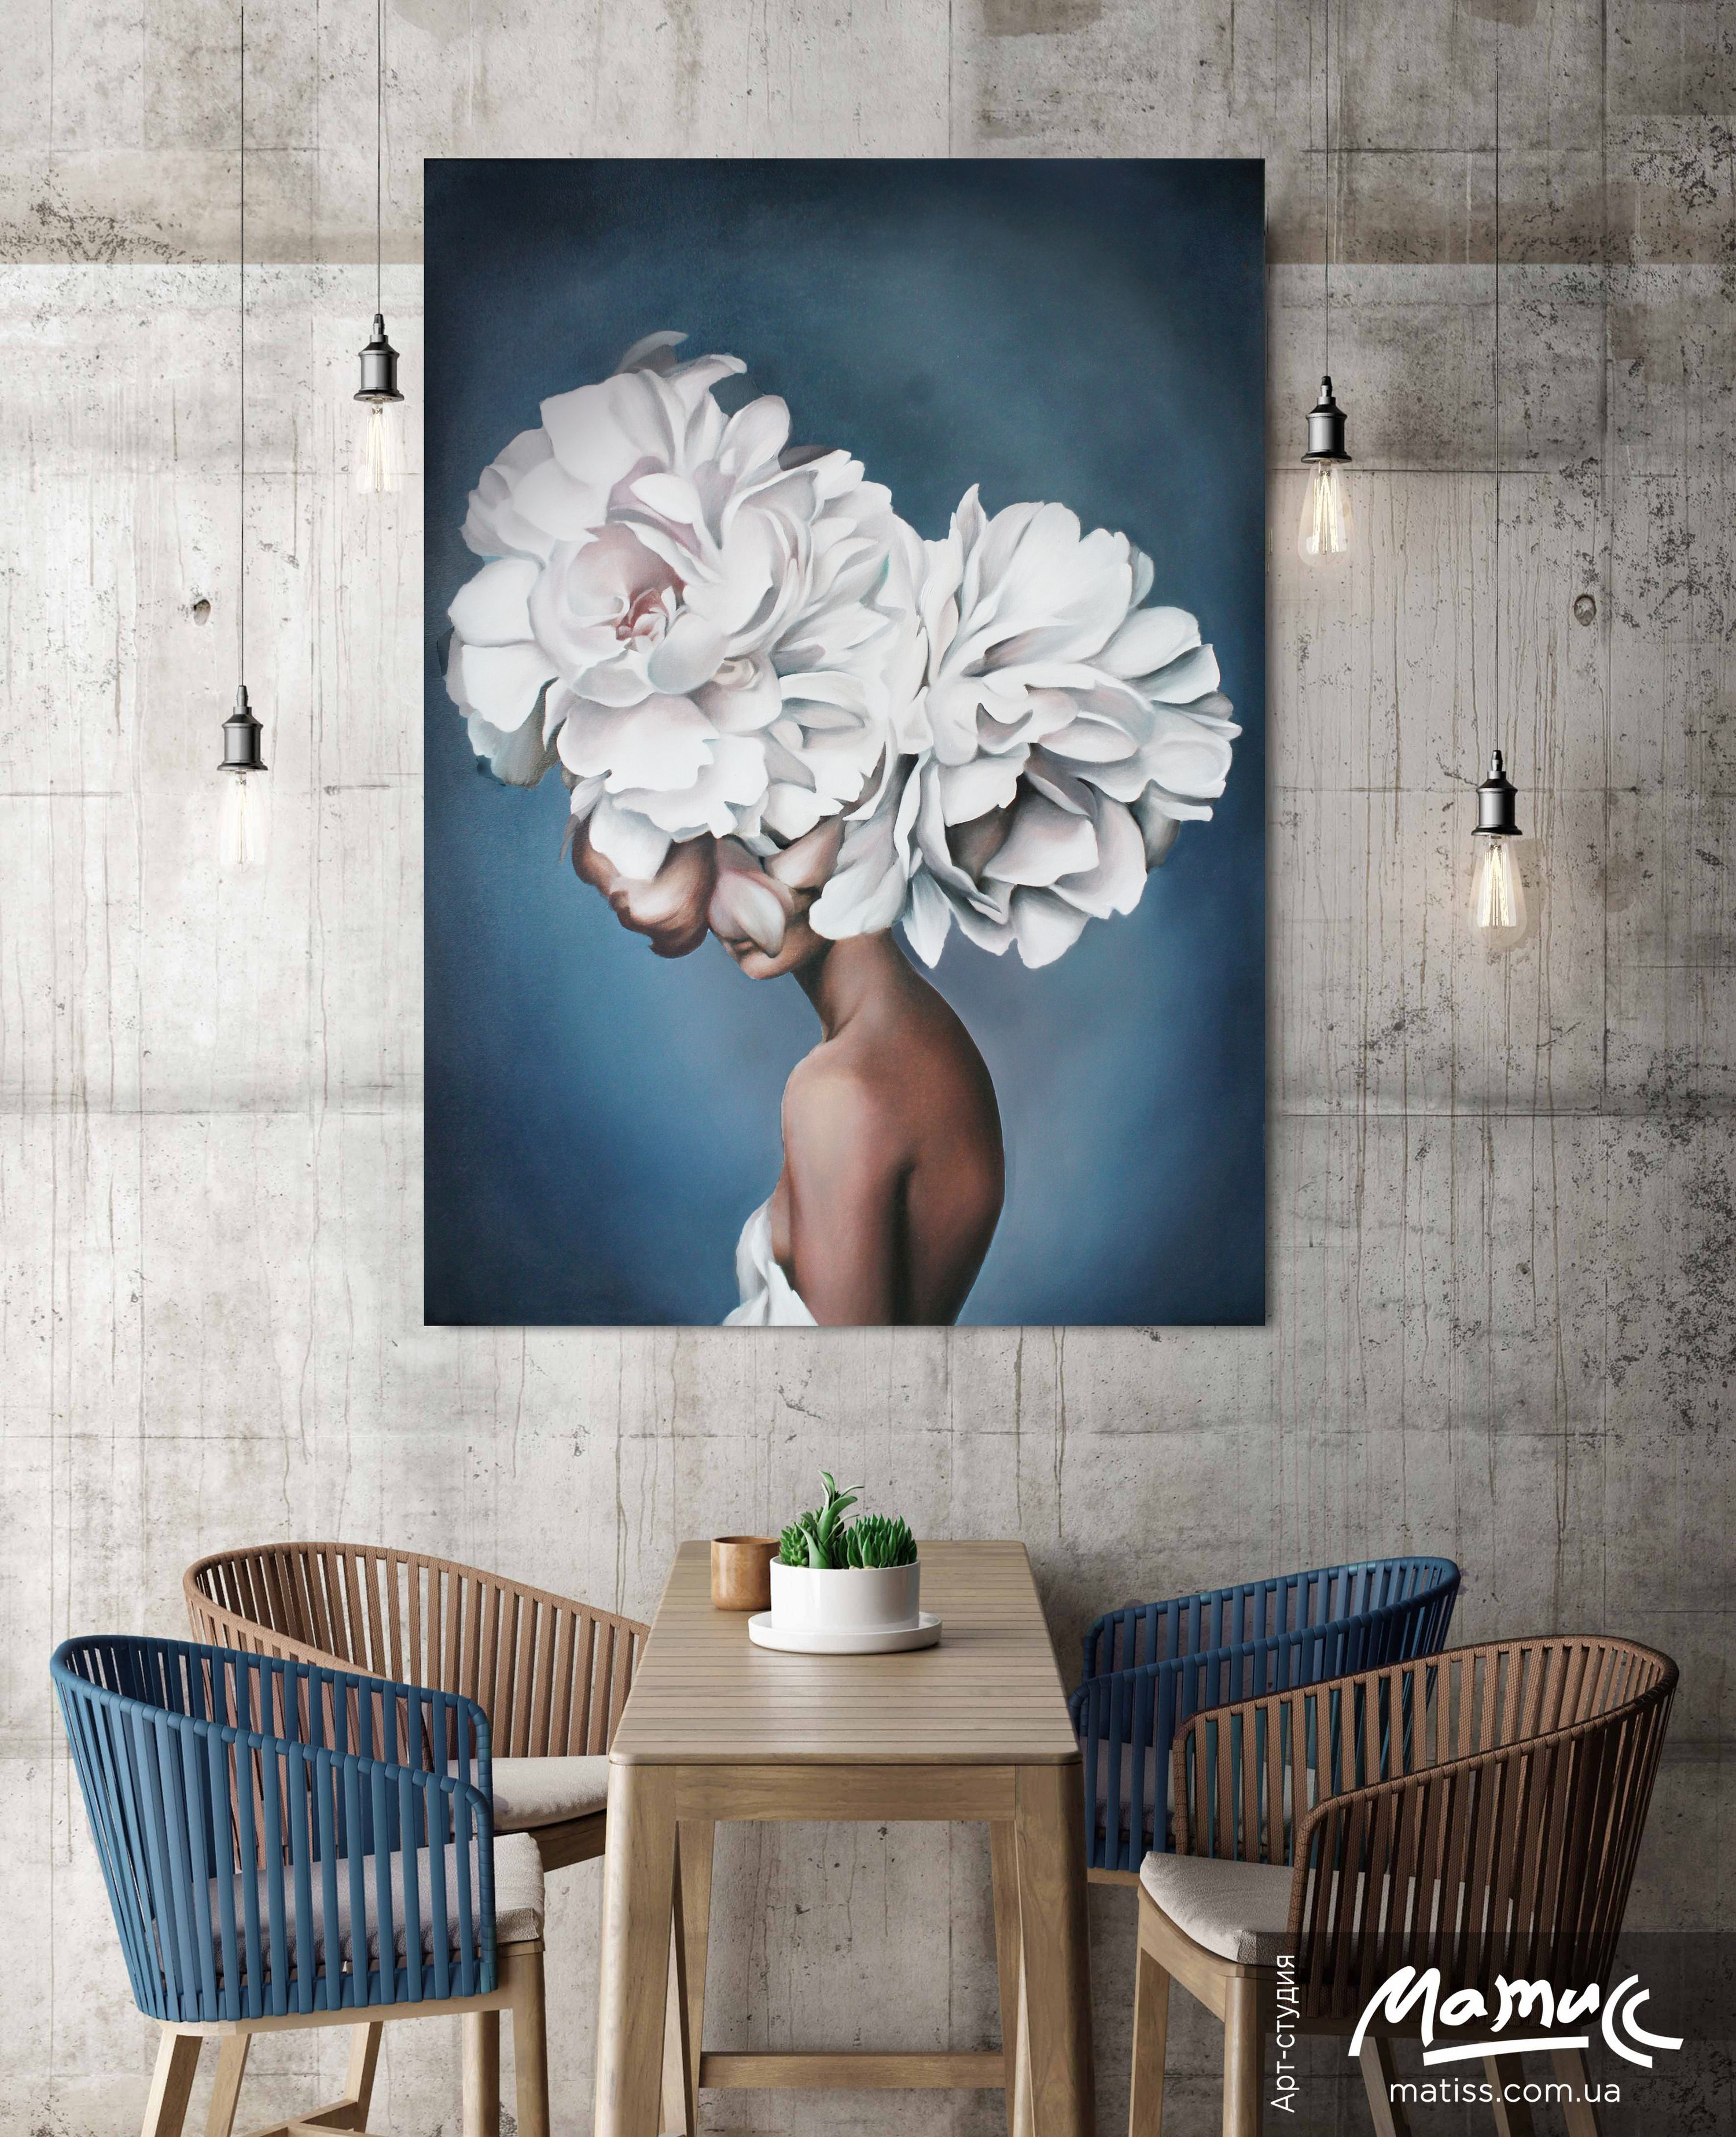 Lady flower. Based on Amy Judd